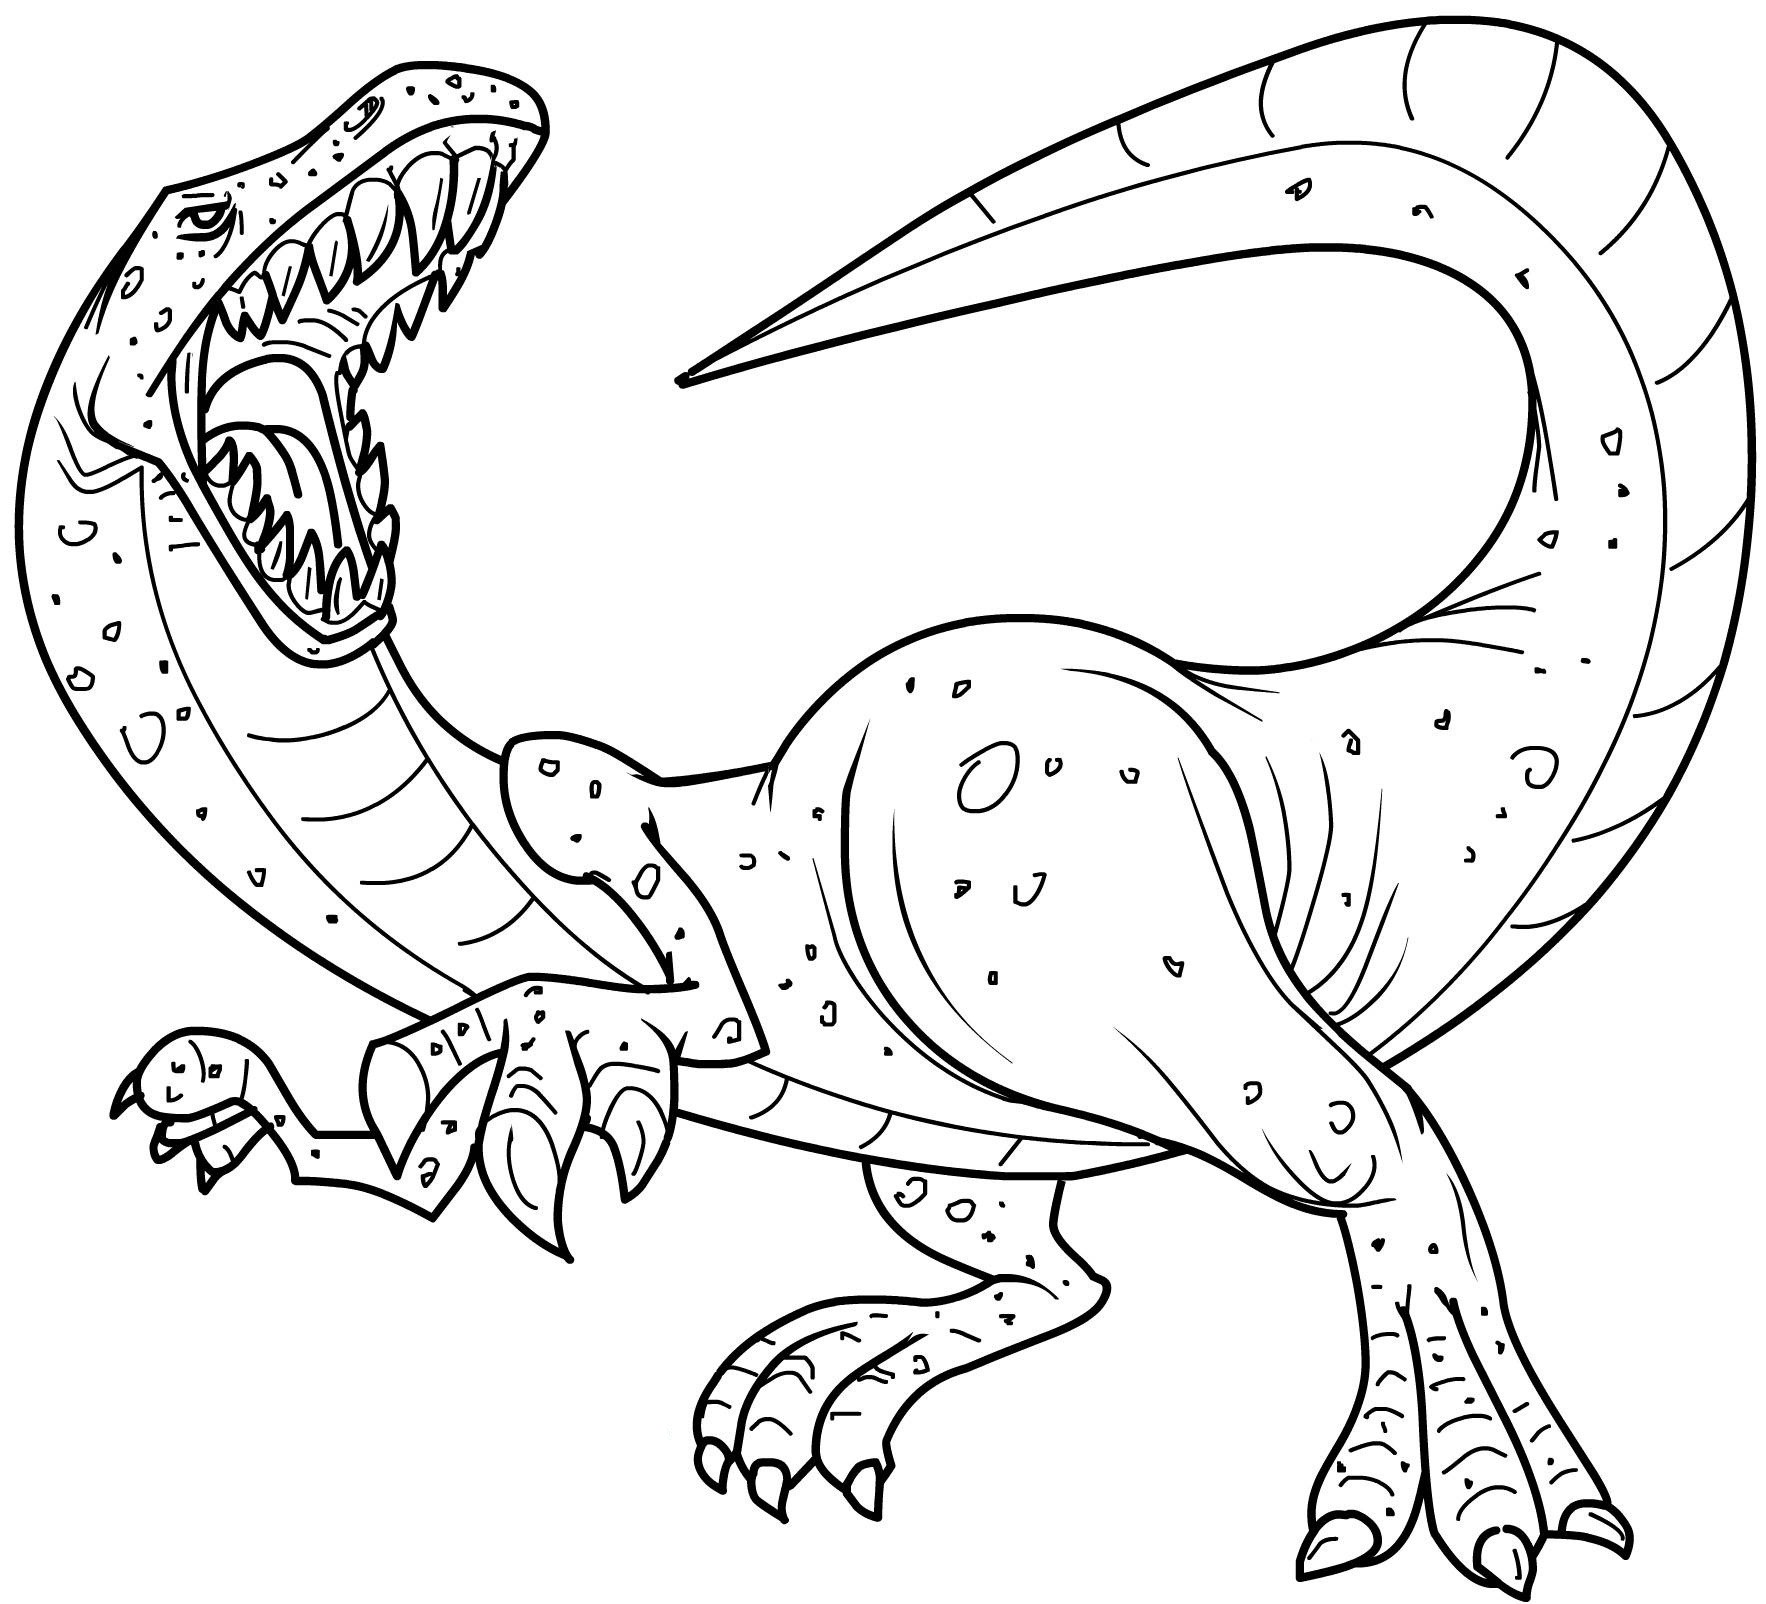 dinosaur printable pictures t rex dinosaur coloring pages at getcoloringscom free printable dinosaur pictures